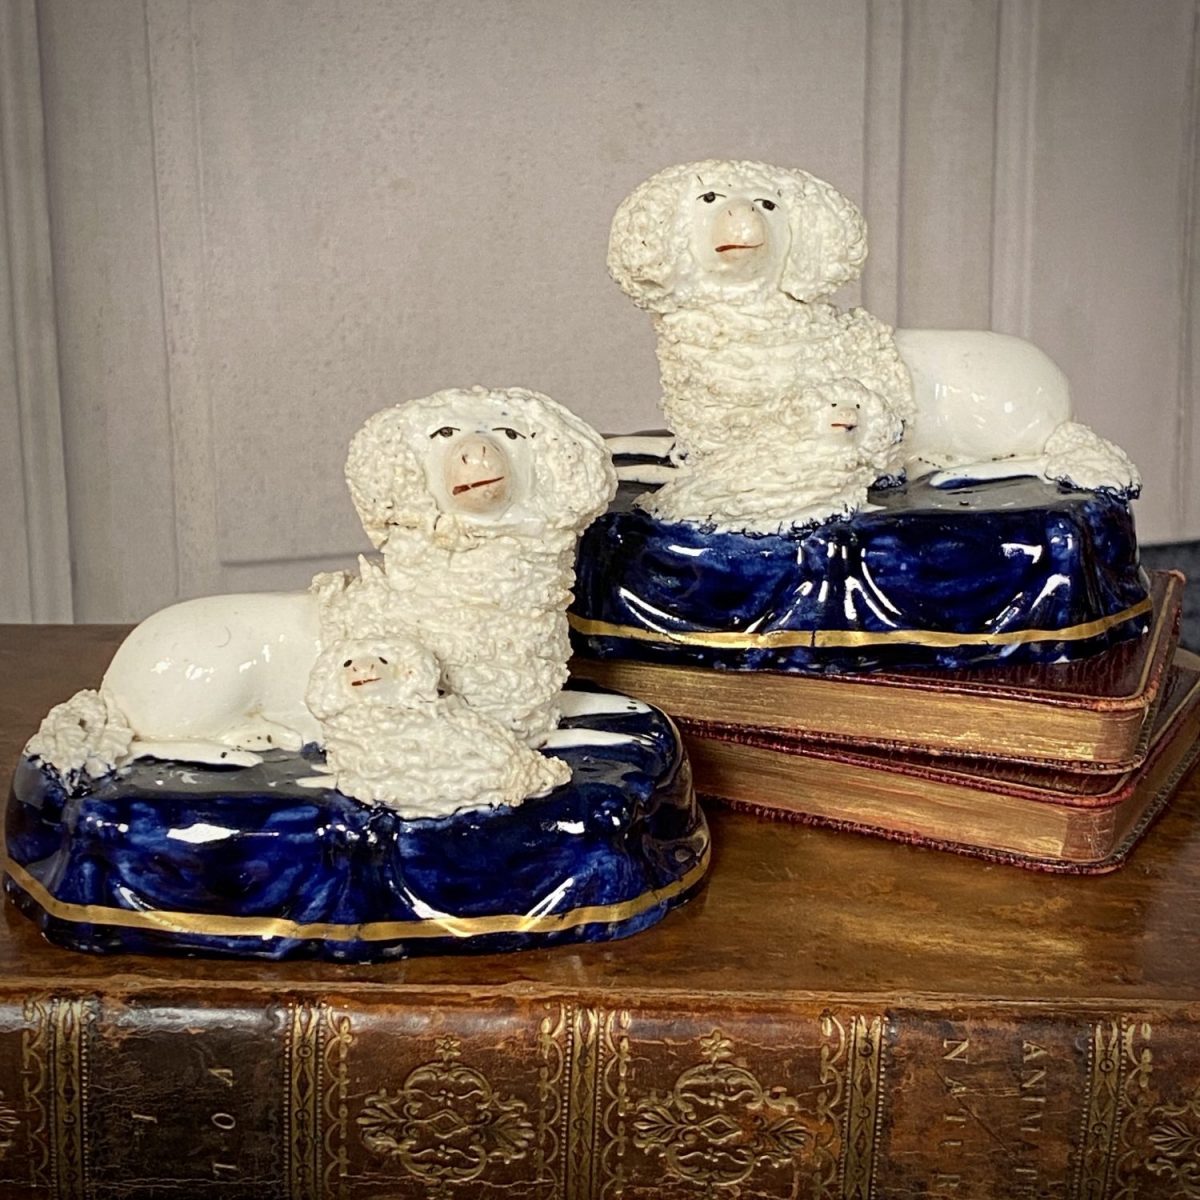 Pair of Staffordshire Poodles & Puppies on Blue Bases.